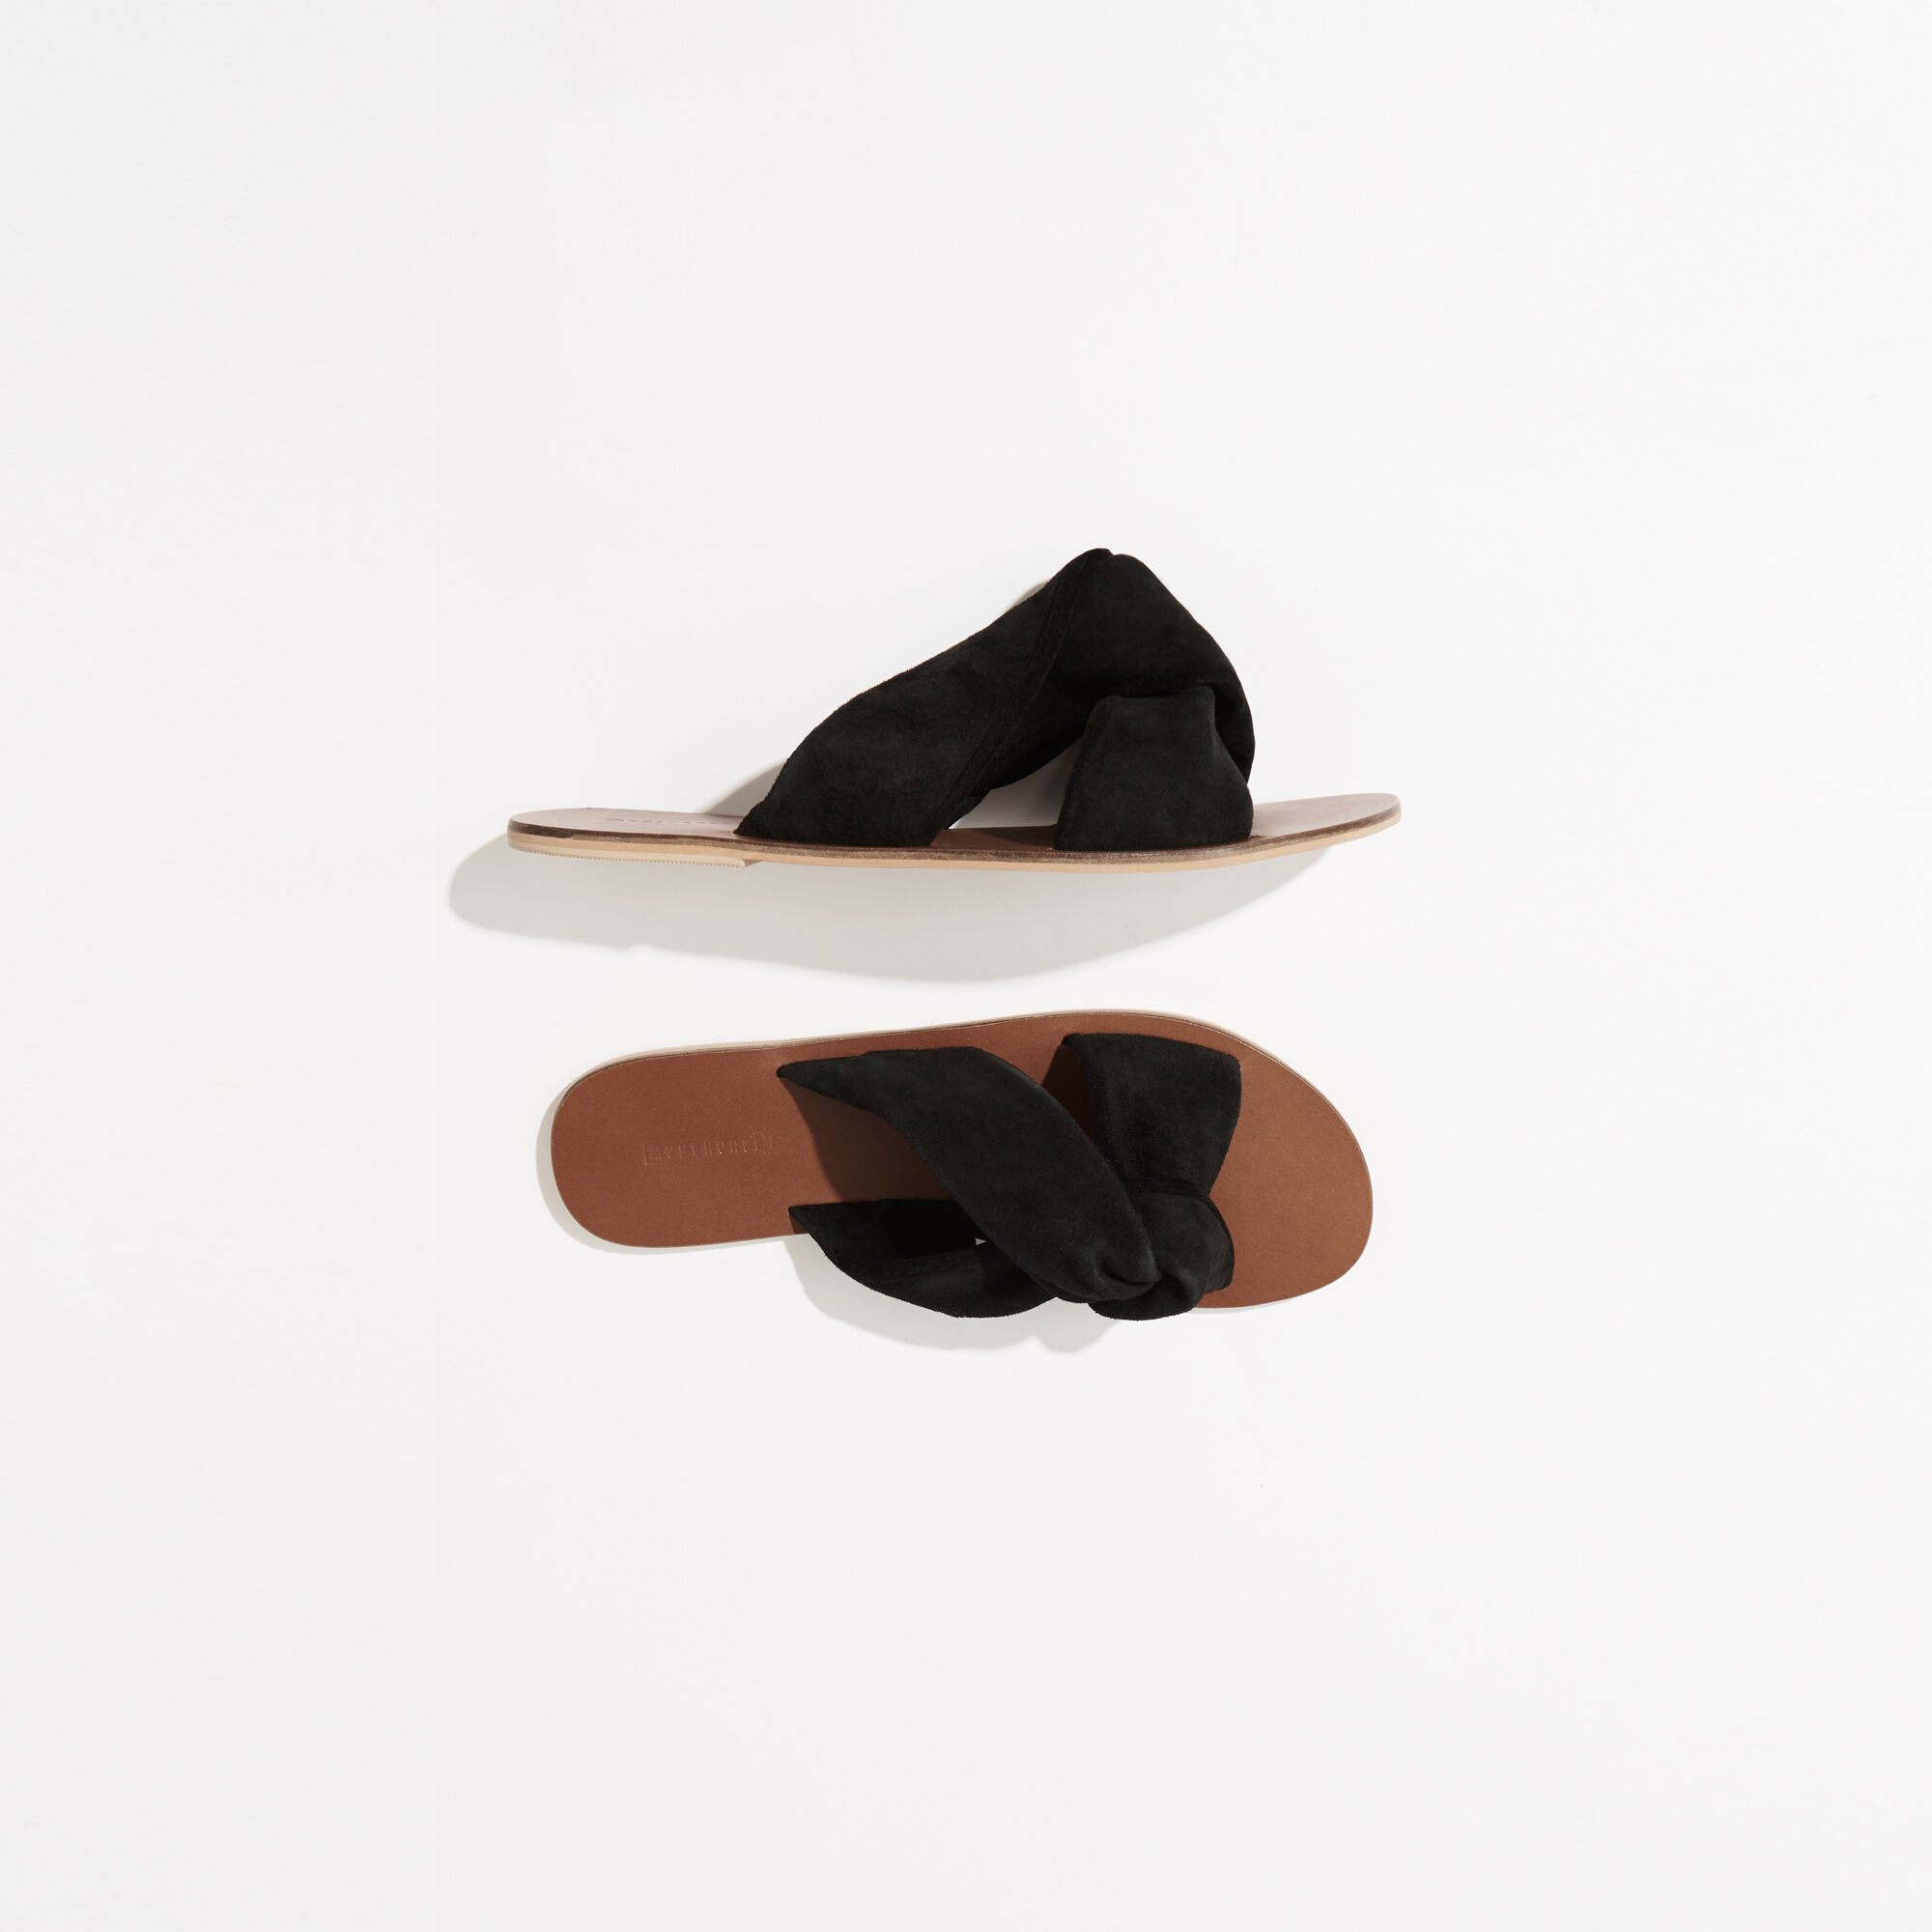 Warehouse, SUEDE KNOTTED SANDAL Black 1